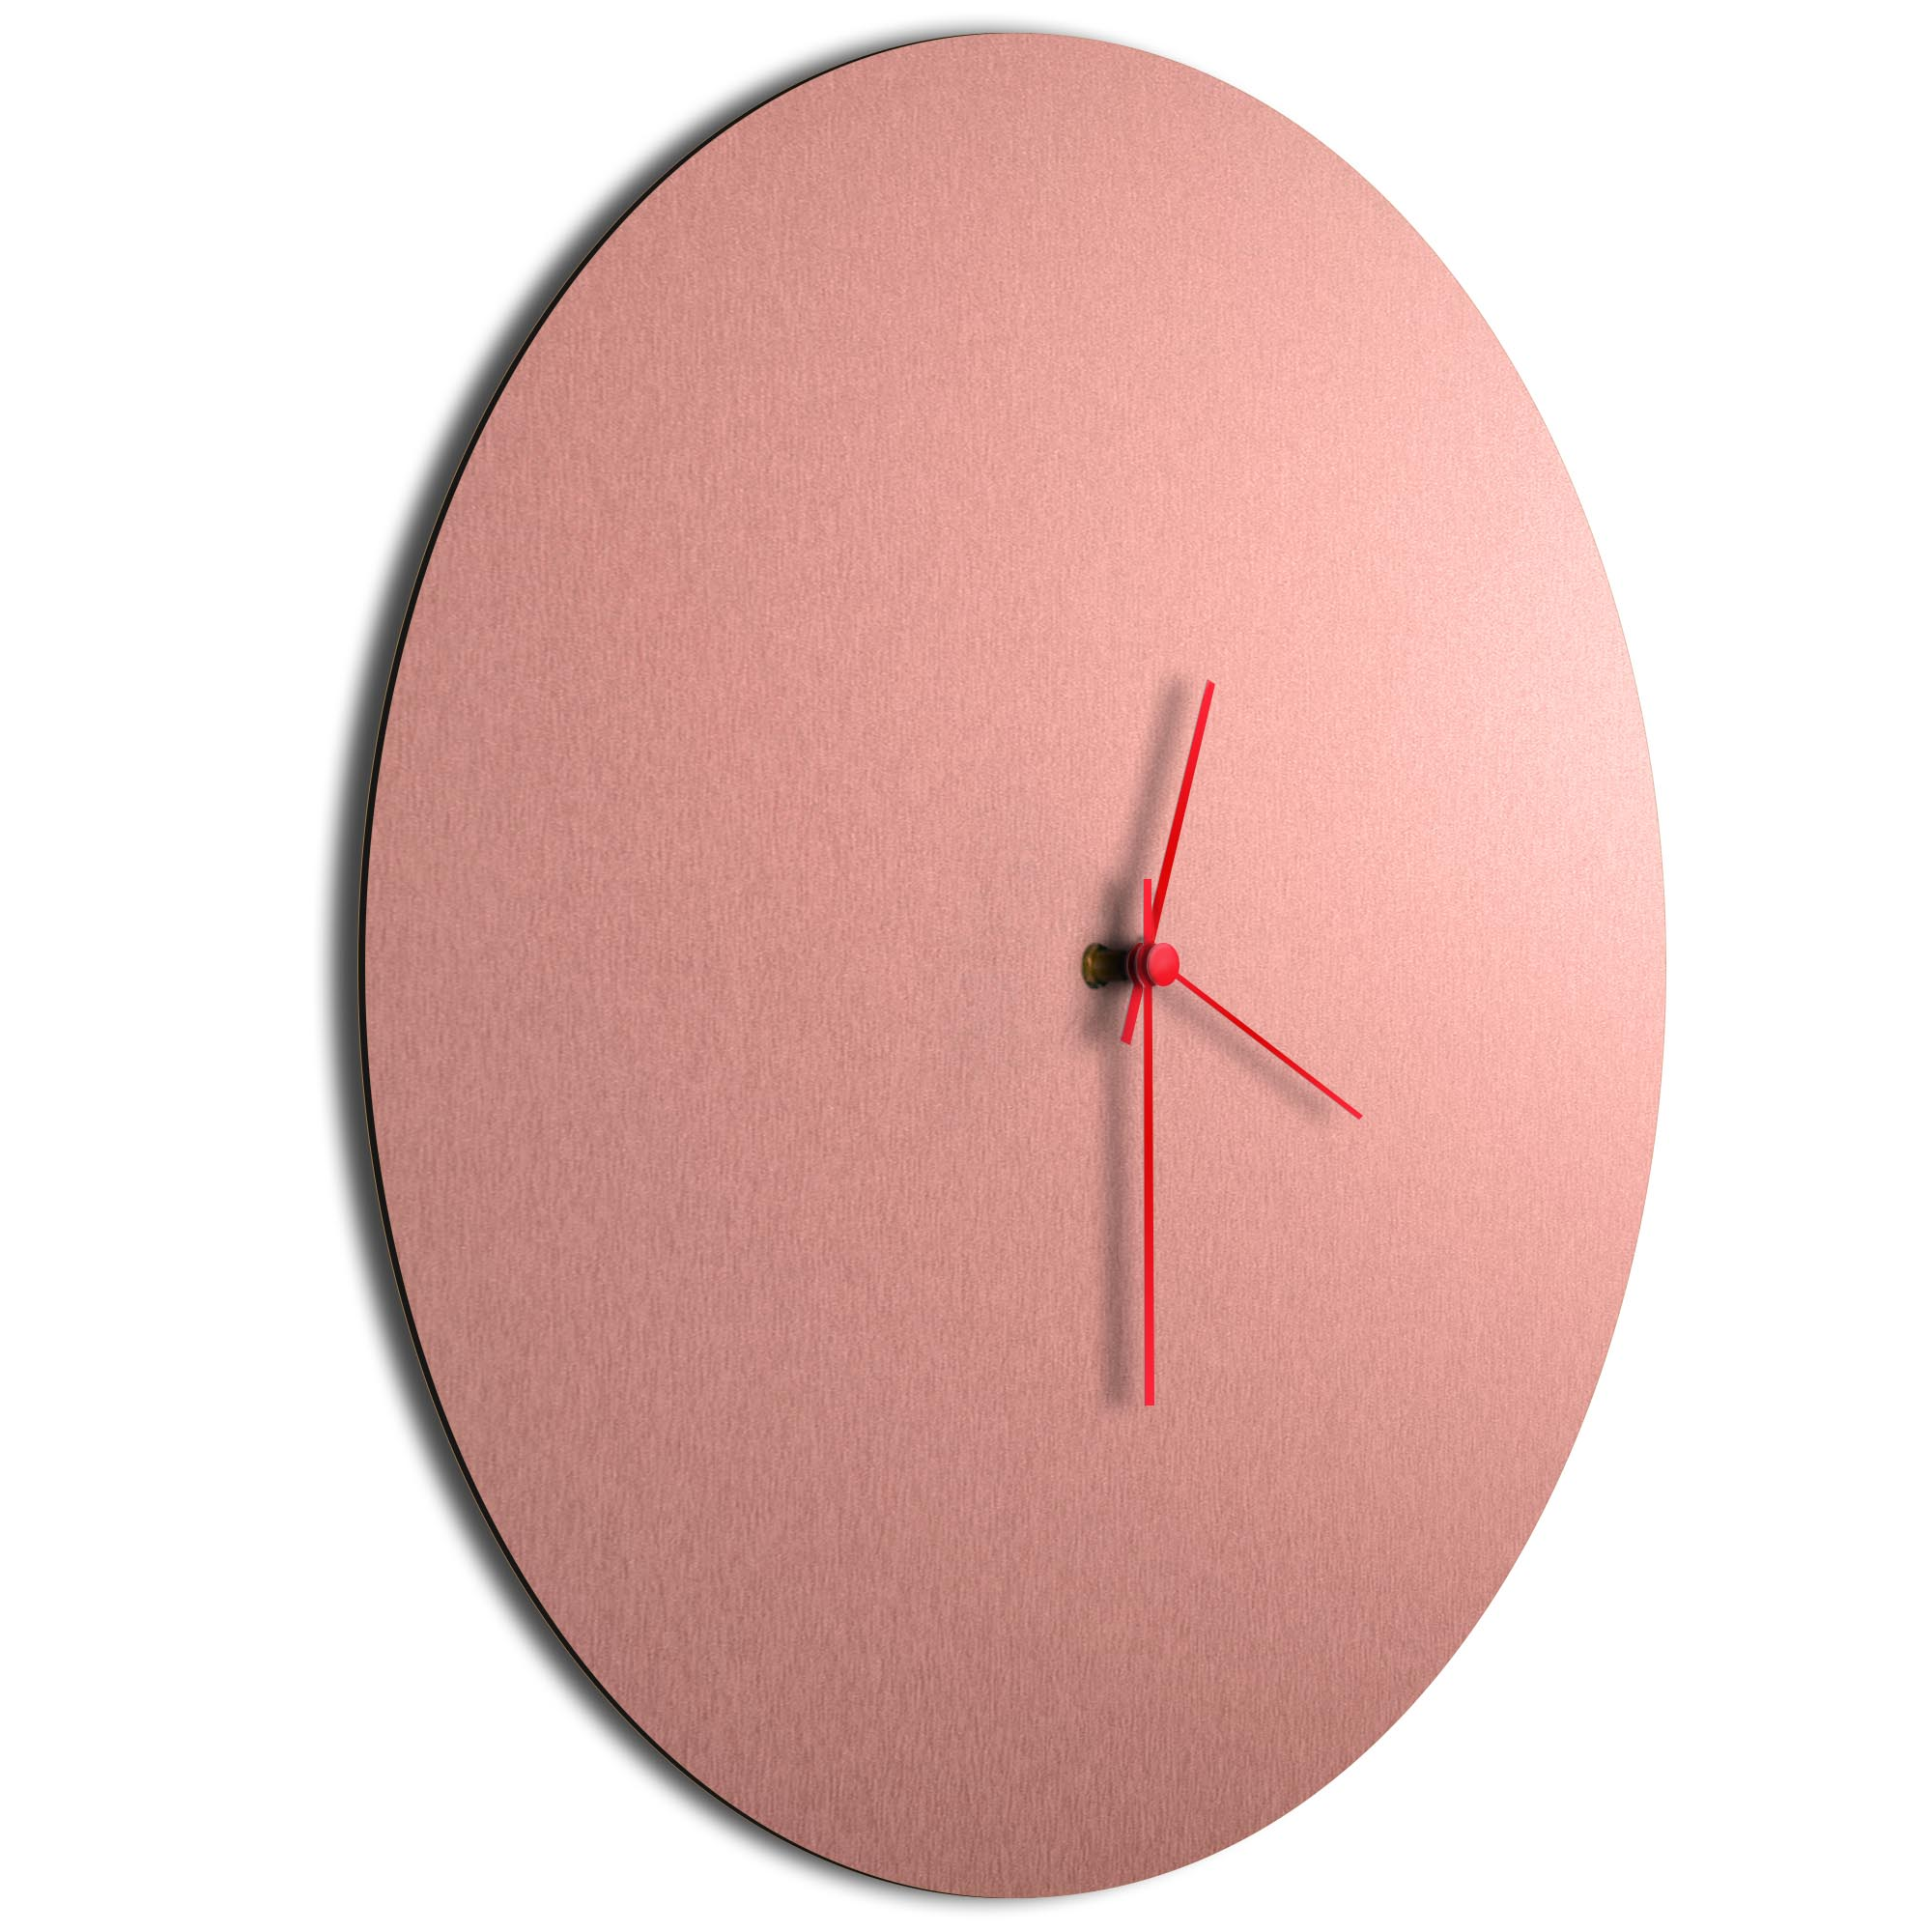 Coppersmith Circle Clock Large Red - Image 2